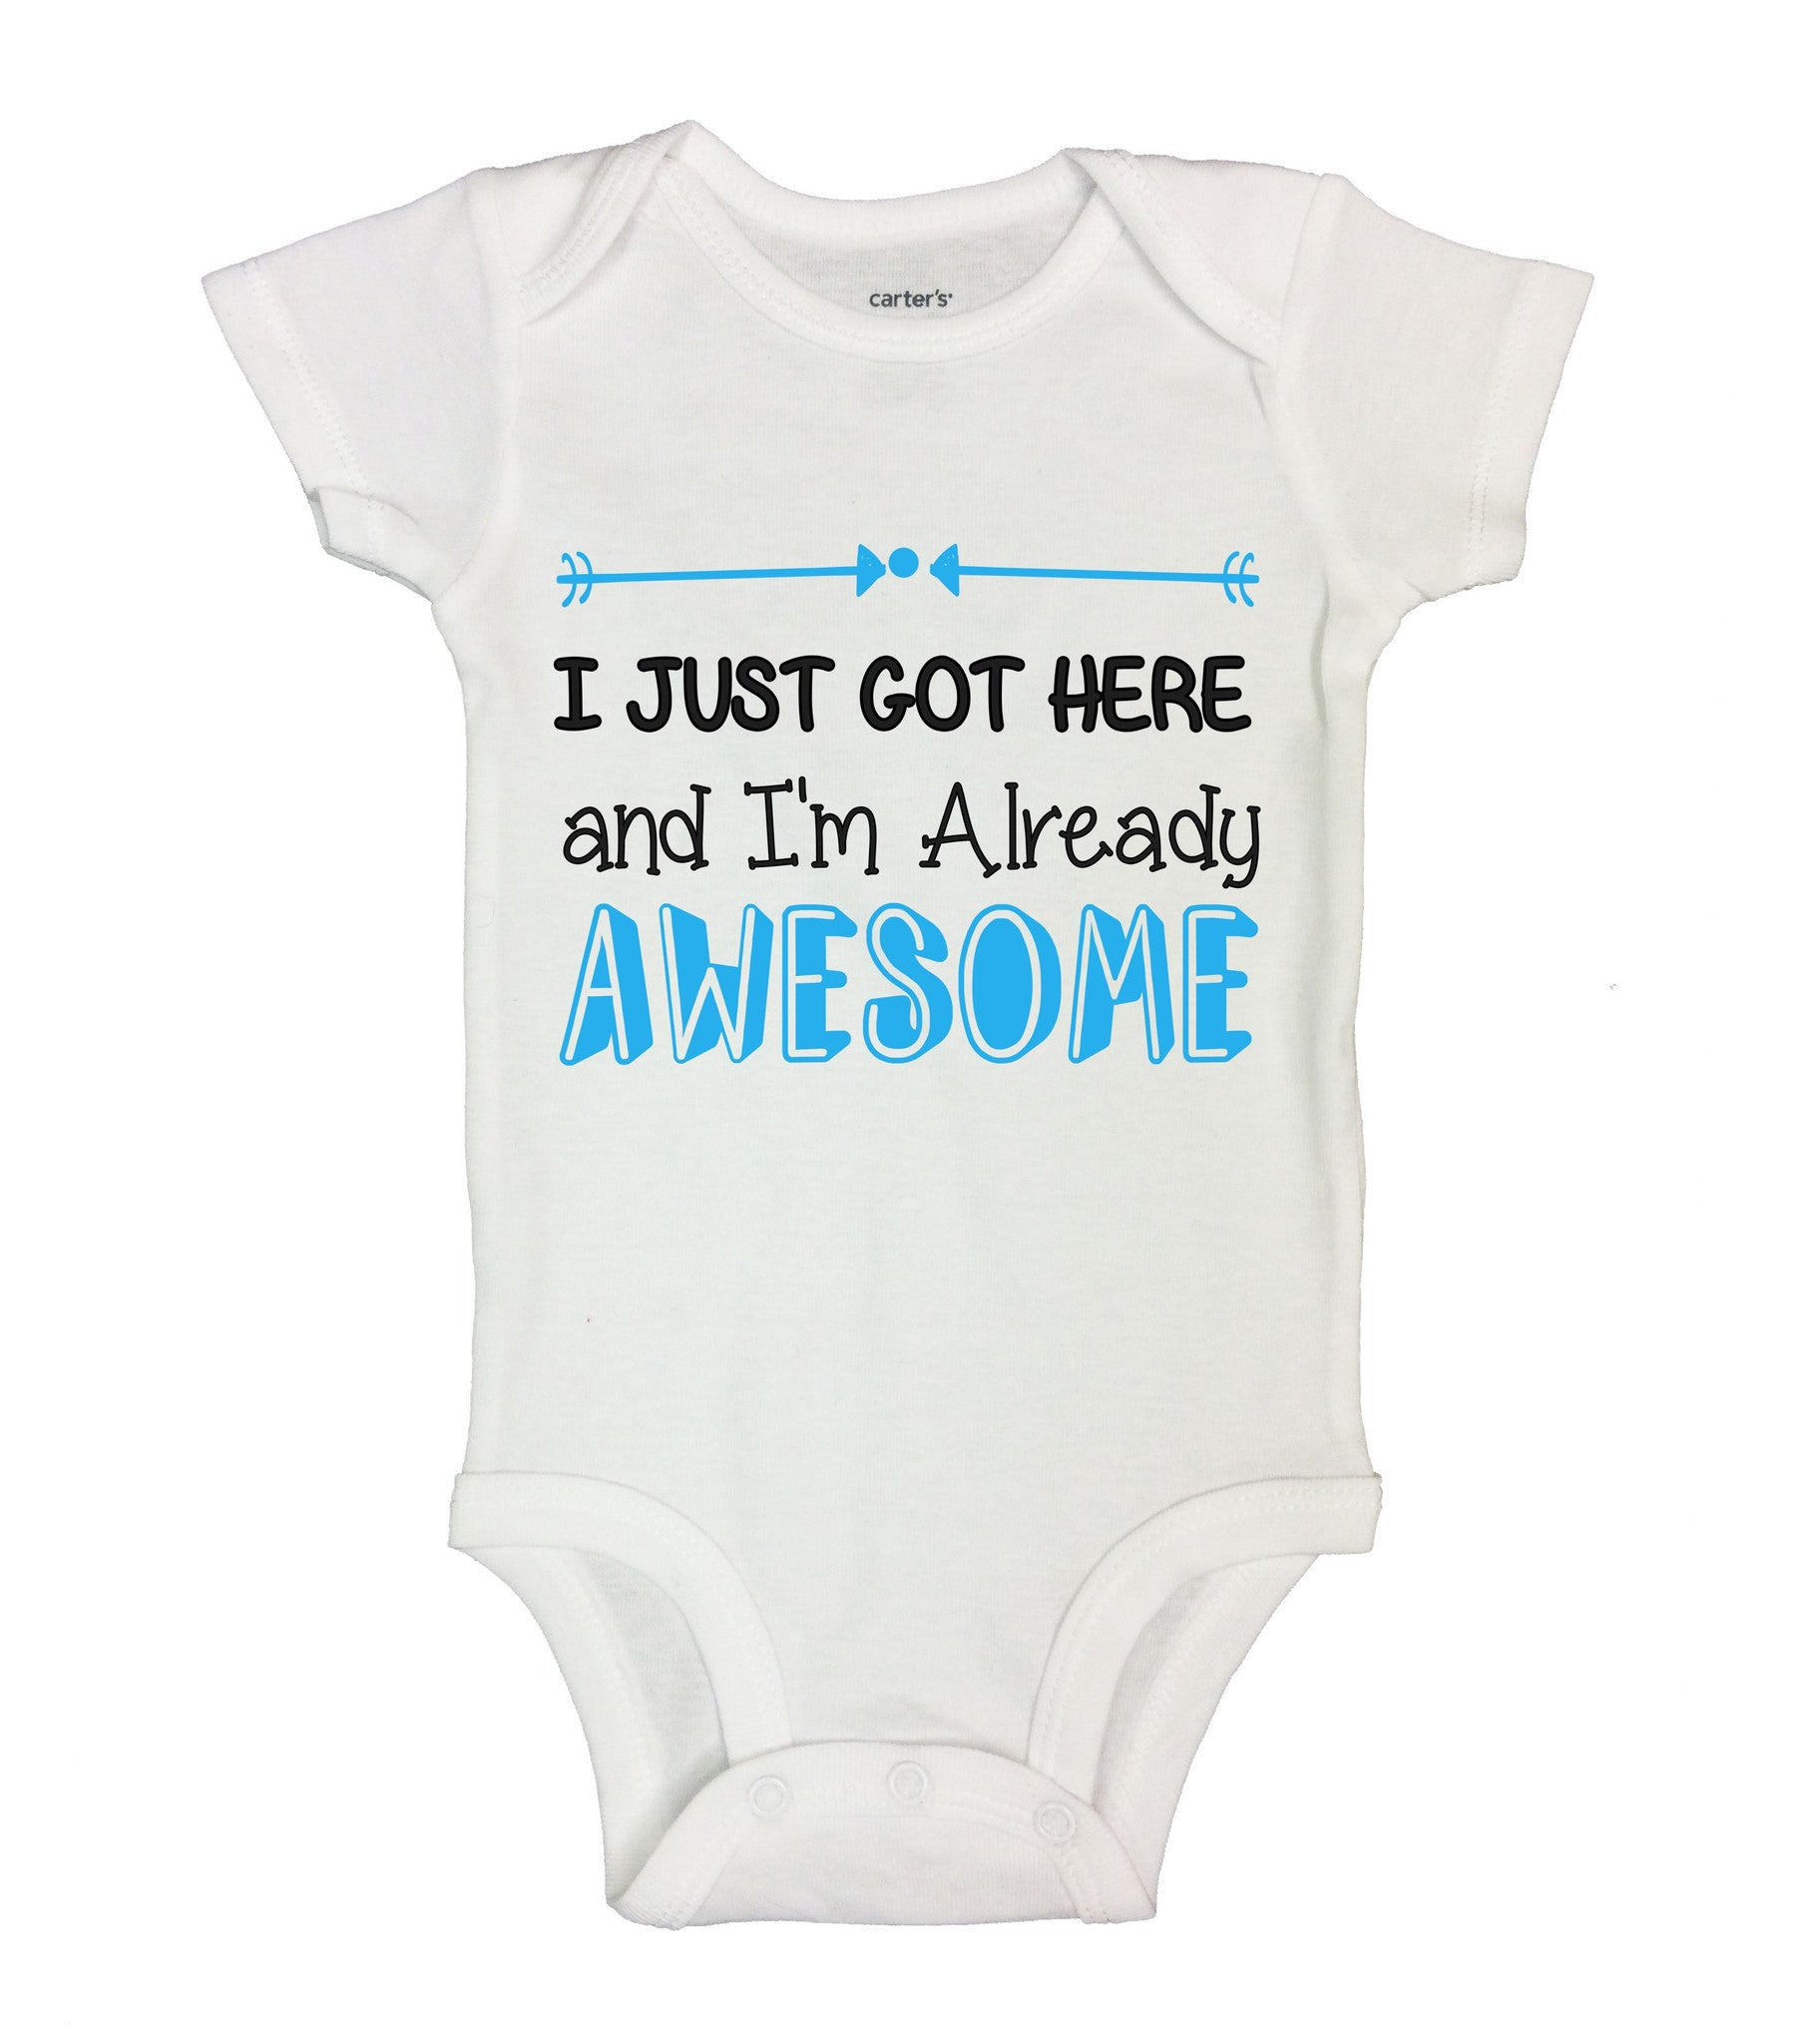 I Just Got Here And I'm Already Awesome Funny Kids Onesie - B149 - Funny Shirts Tank Tops Burnouts and Triblends  - 2